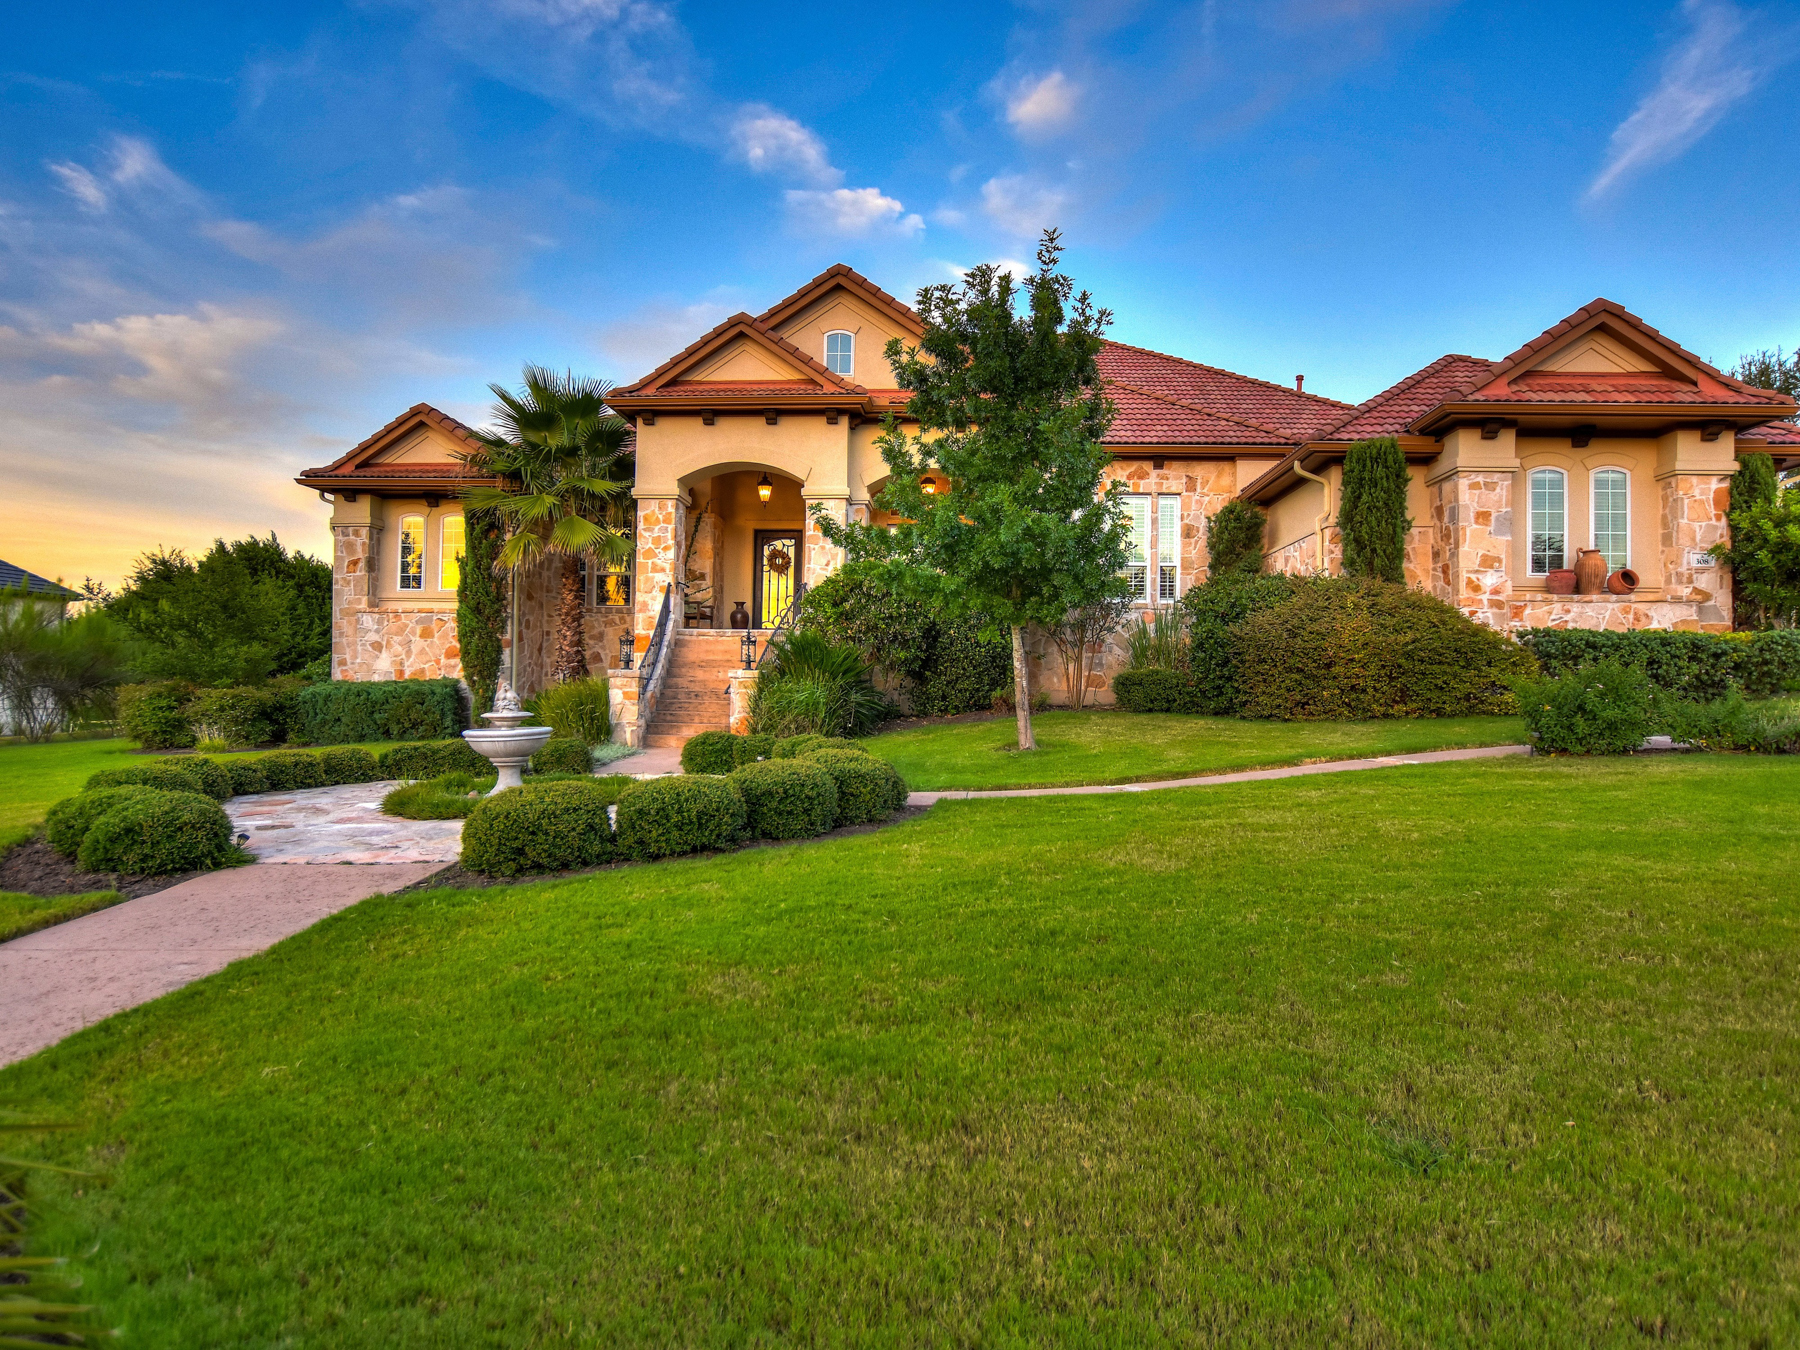 Casa Unifamiliar por un Venta en Beautiful Bell Montagna Home 308 Bella Montagna Lakeway, Texas 78734 Estados Unidos